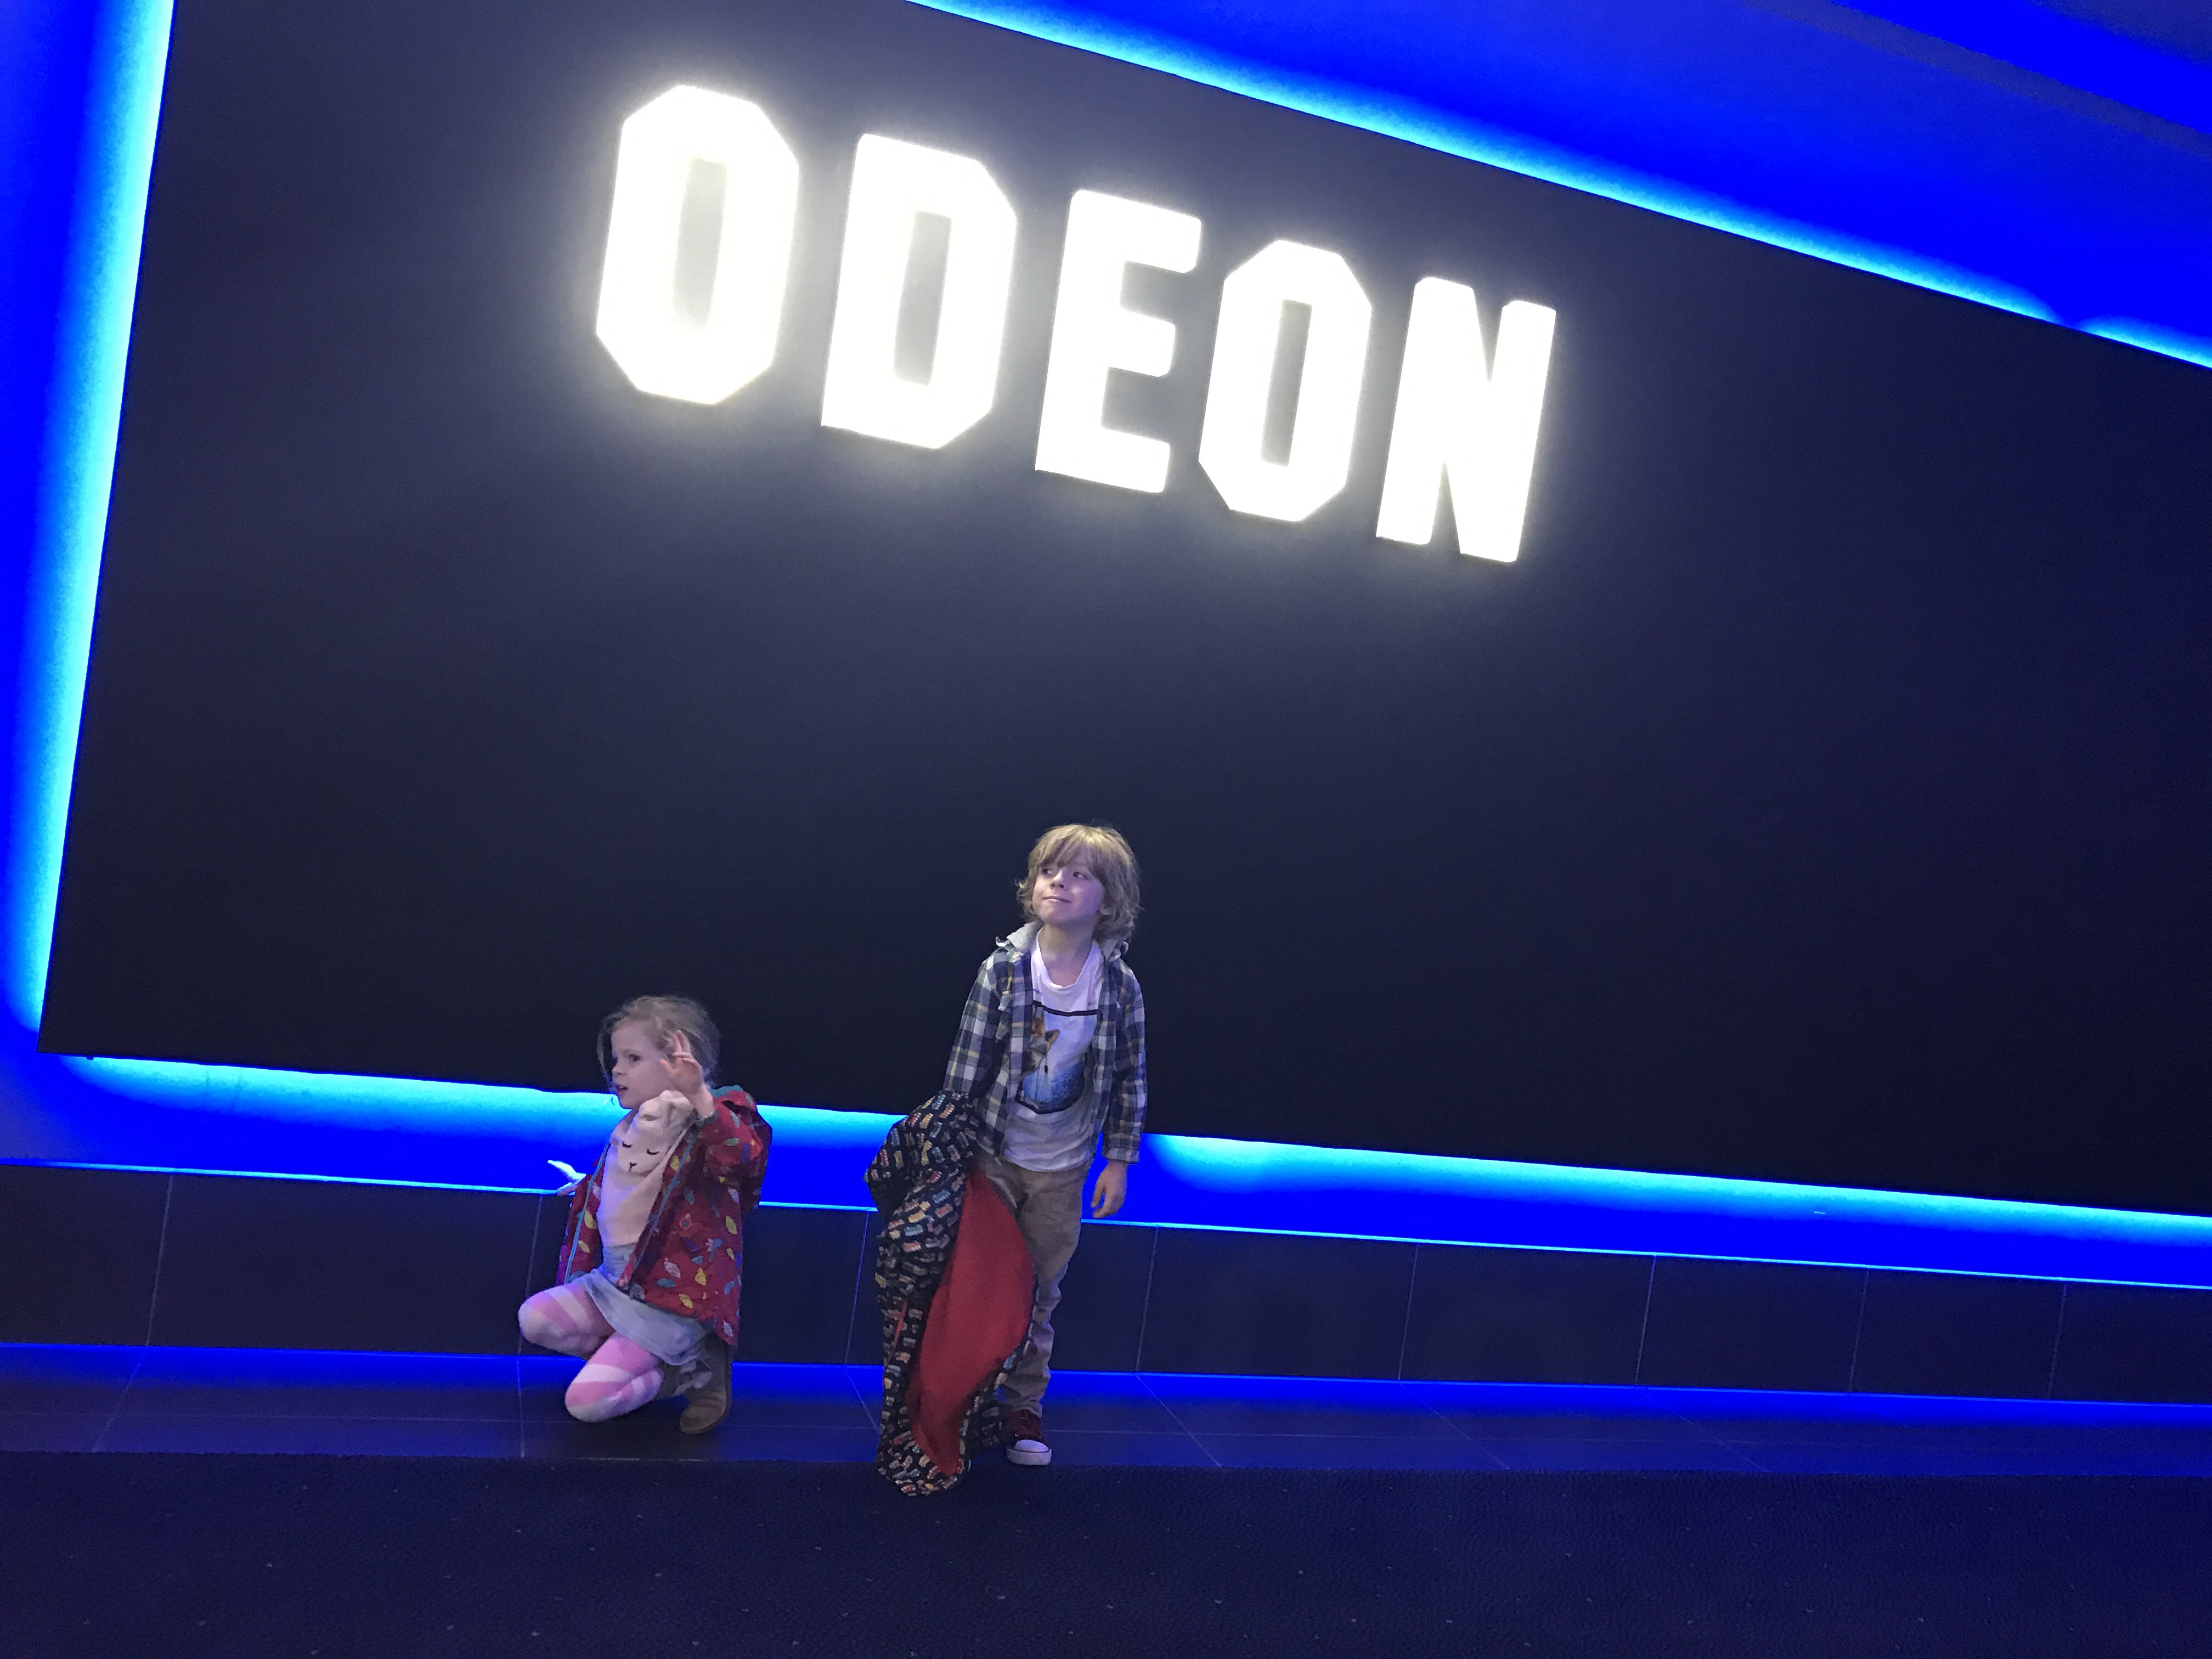 Get the family down to ODEON this half term